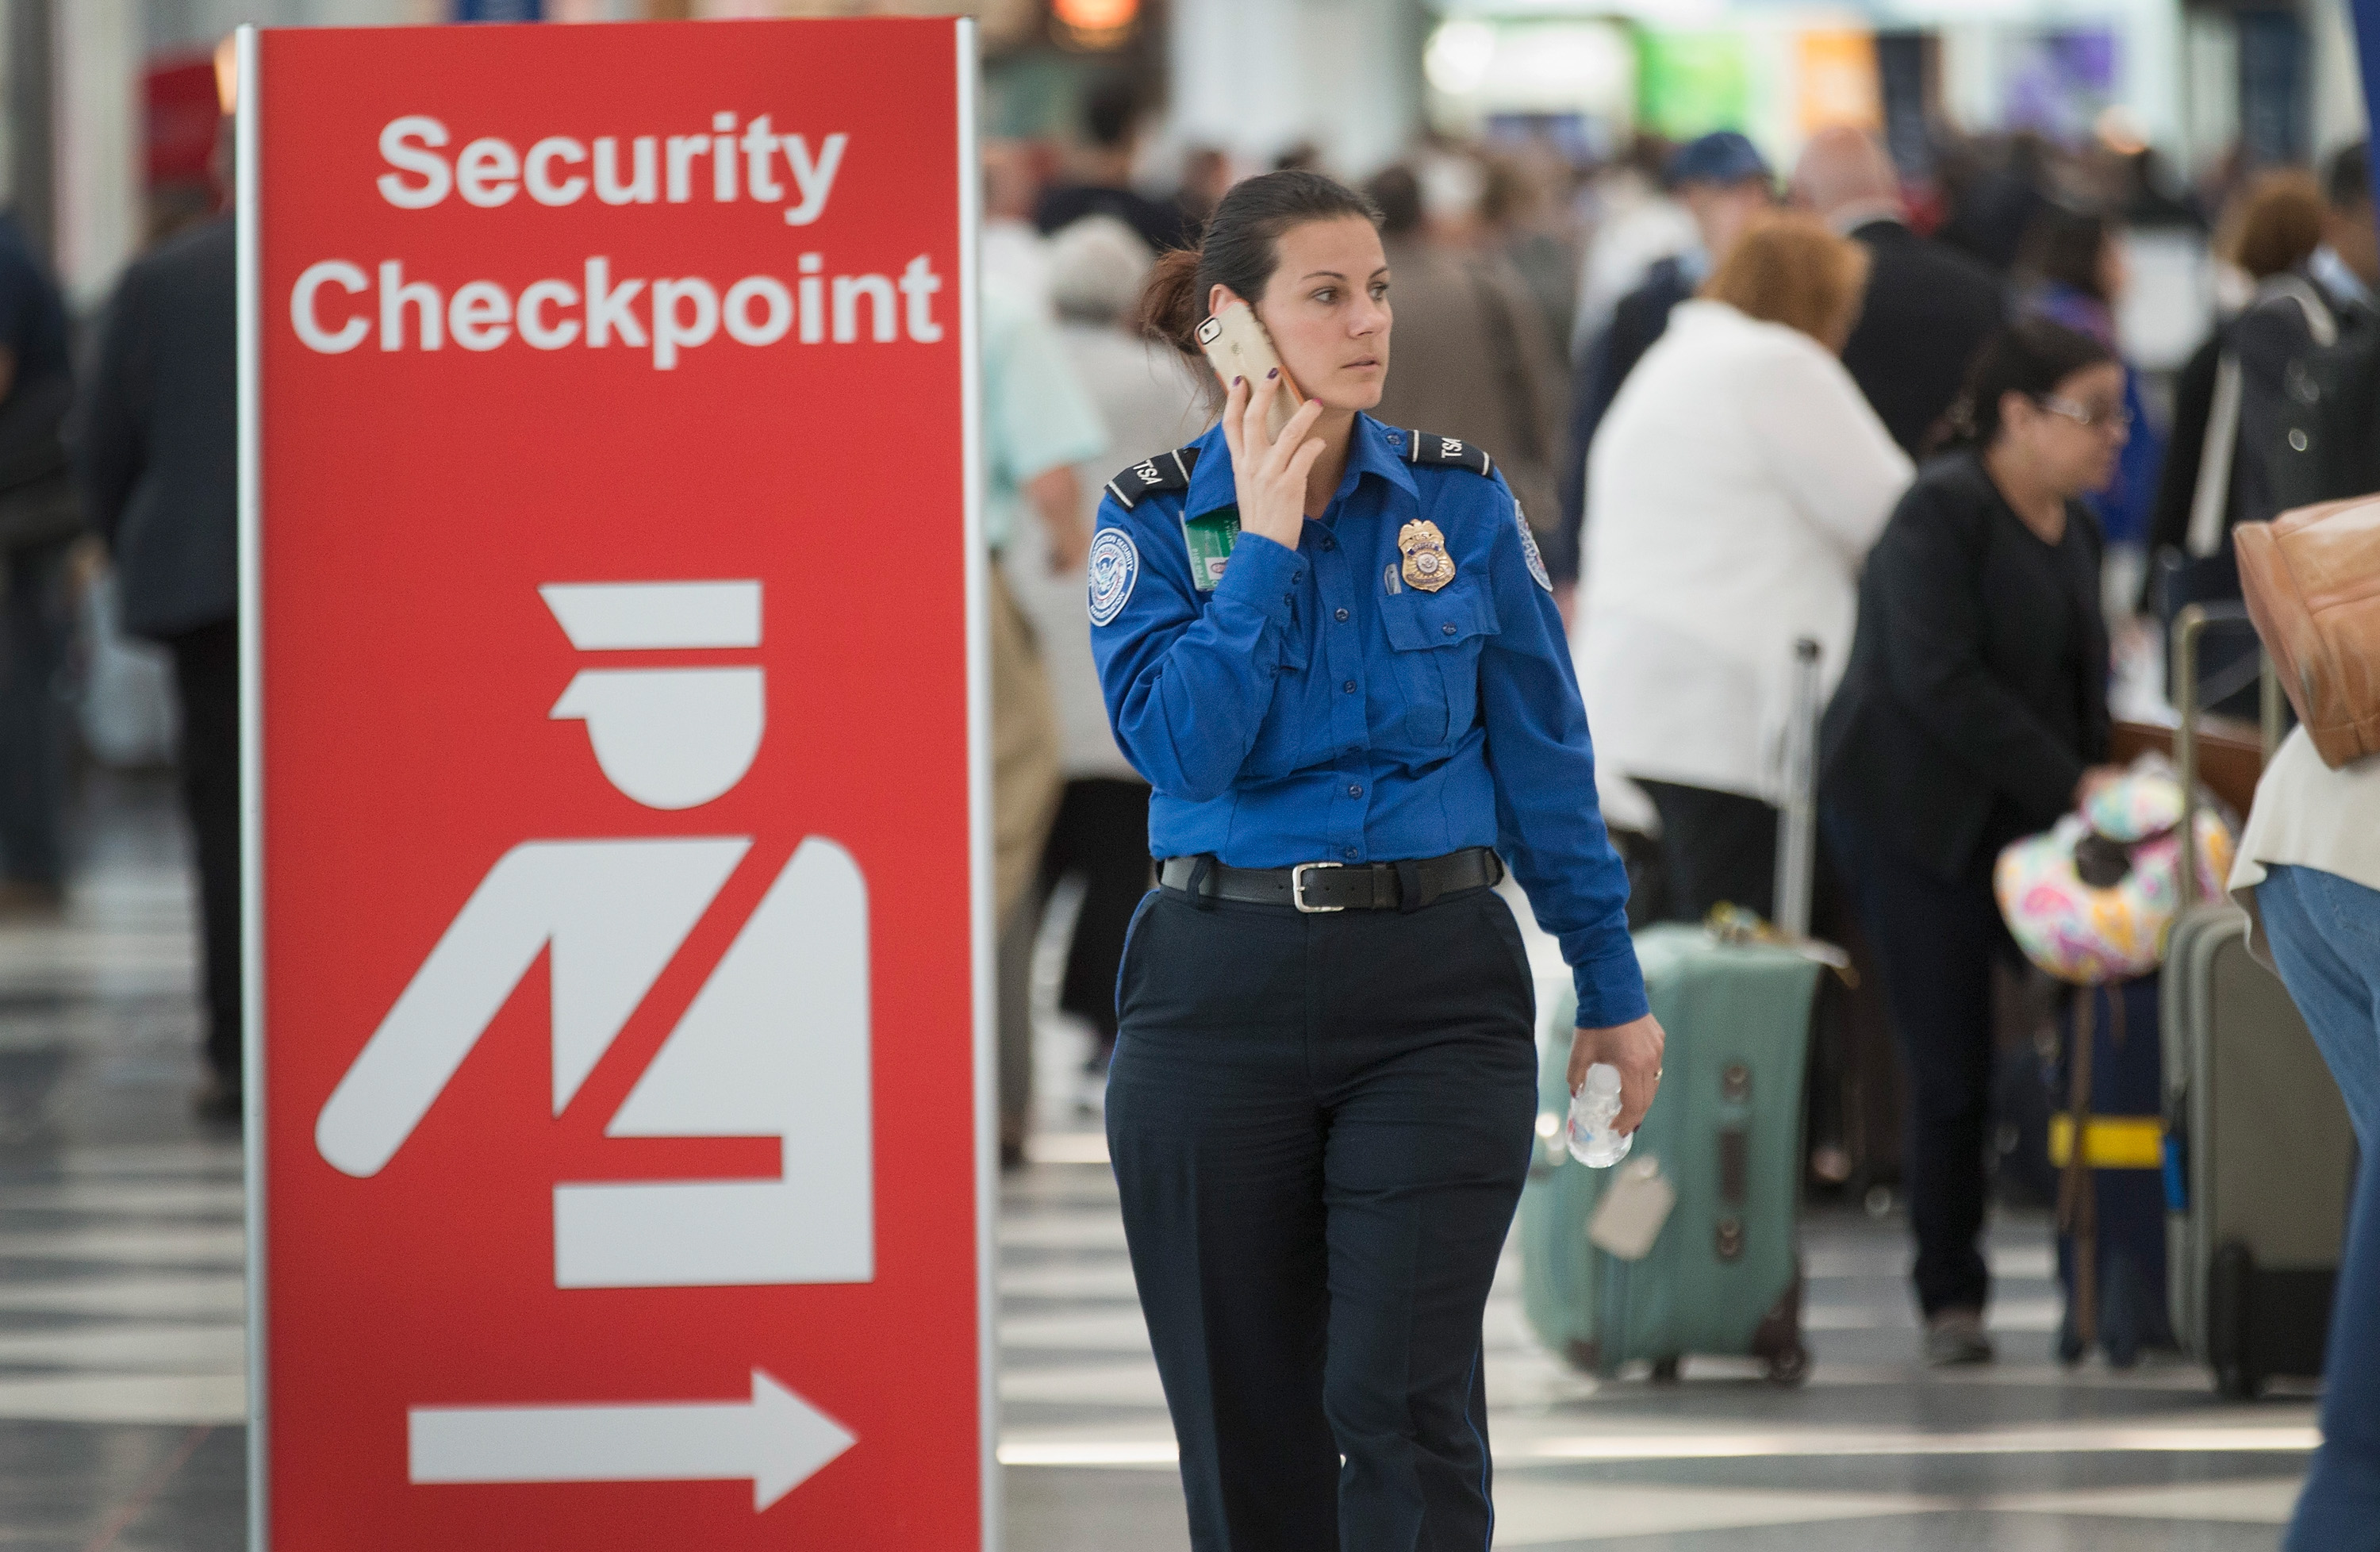 A security checkpoint staffed by TSA workers at Chicago's O'Hare Airport